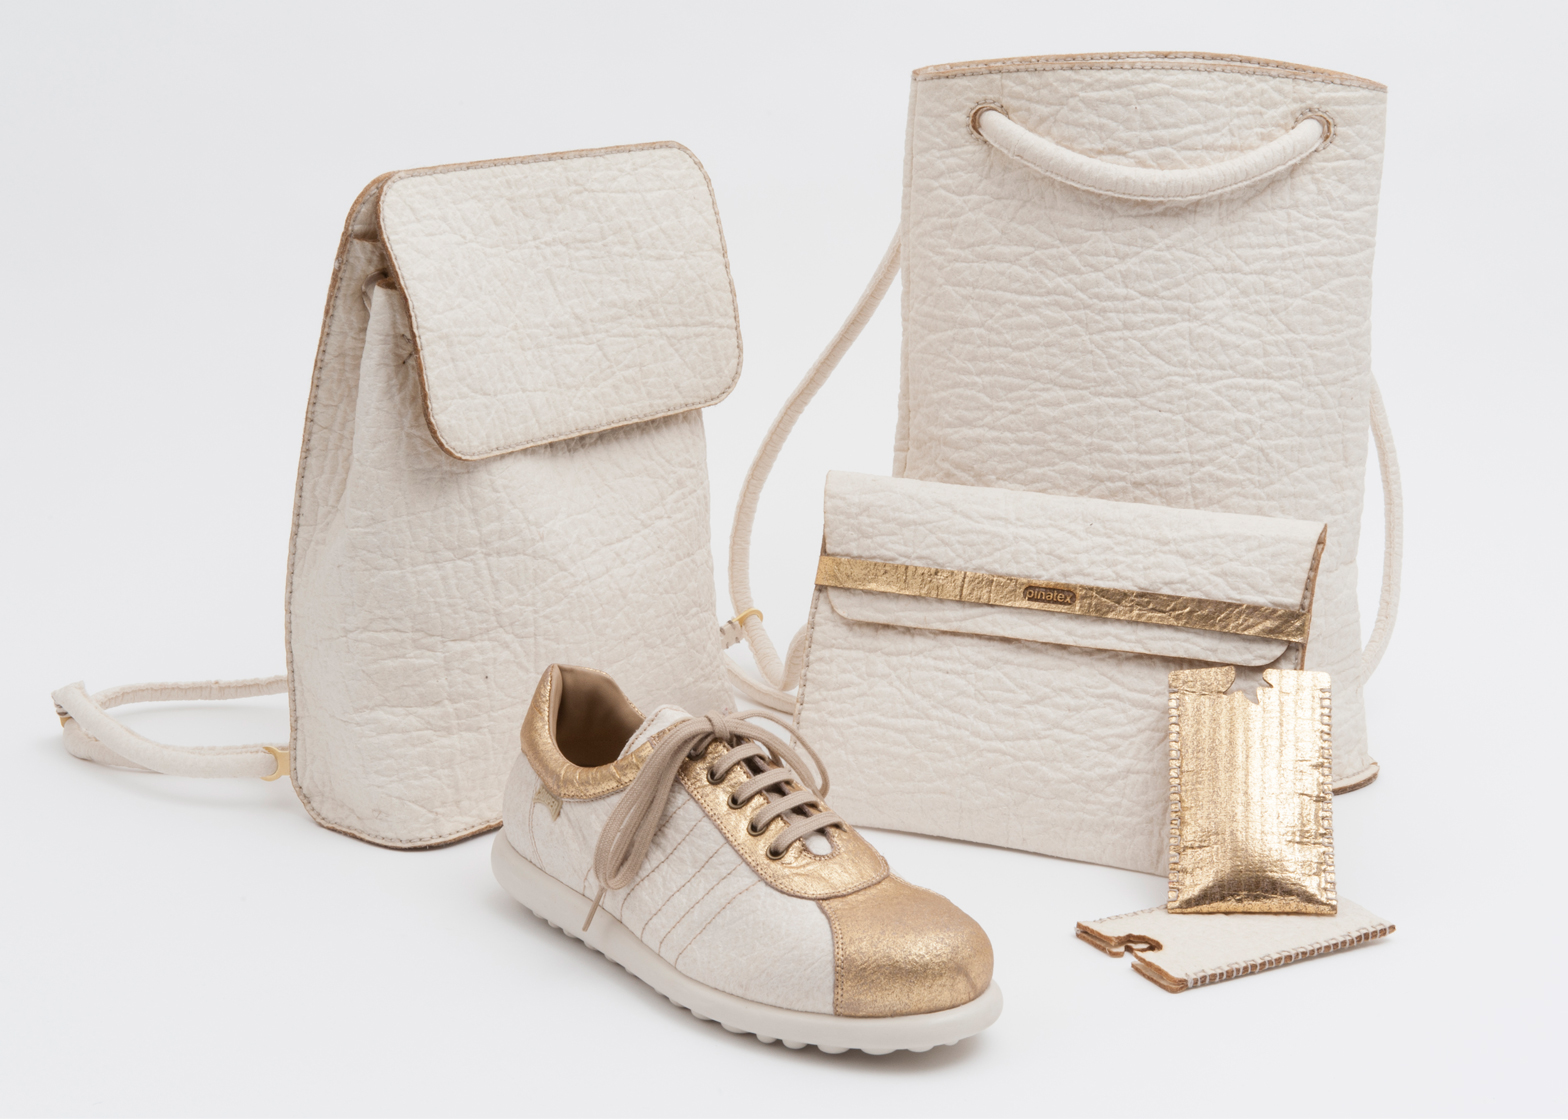 Luxury brands, such as Puma and Hugo Boss, using  Piñatex  material fail to invest in educating the public on the damage our consumer goods create. What is the balance between eliminating leather usage and jumping on the bandwagon to increase revenue?